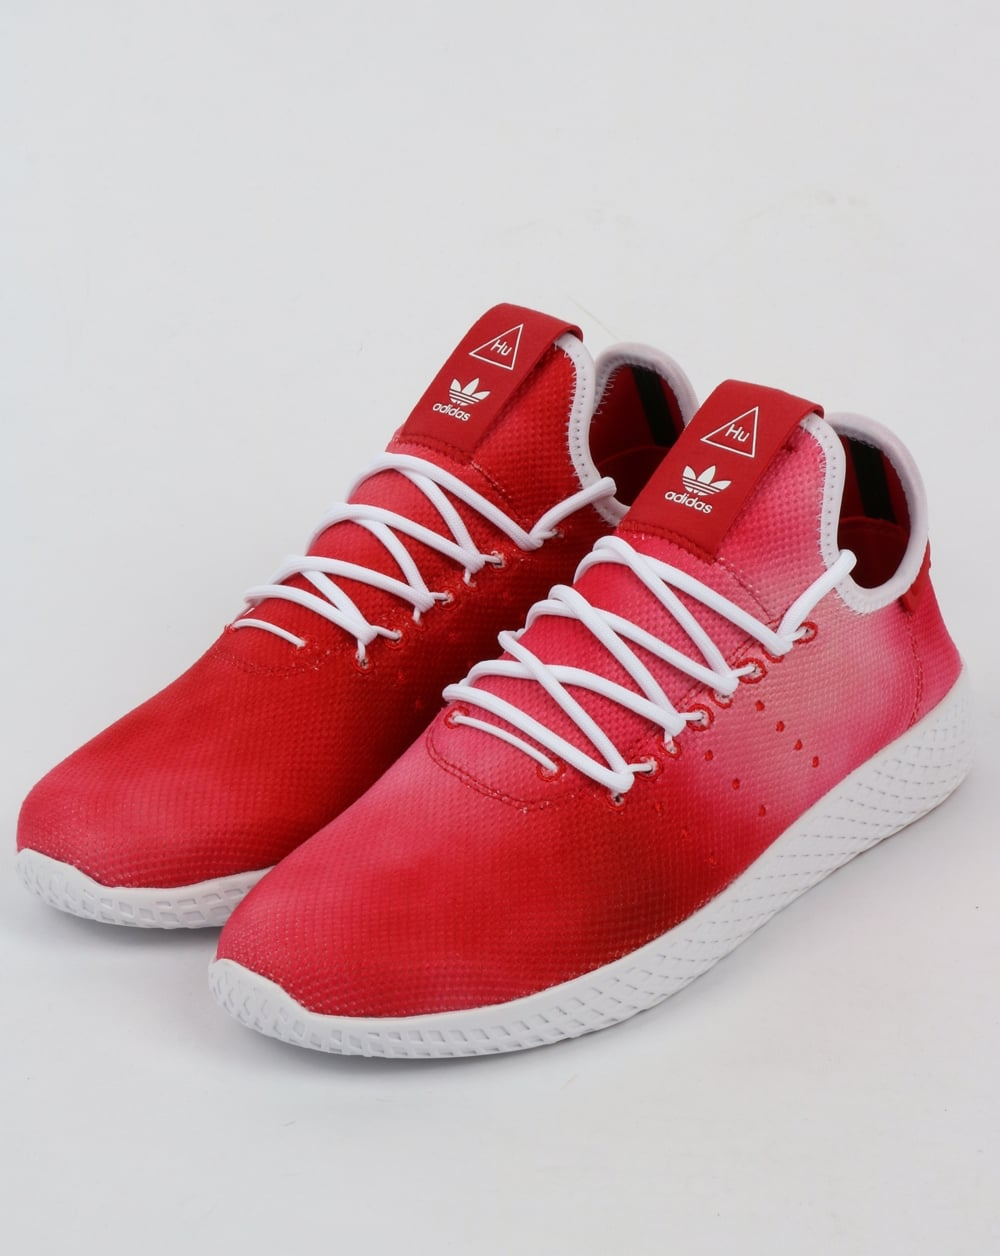 low priced 08d33 bb65f Adidas PW HU Holi Tennis Trainers Scarlet Red/White